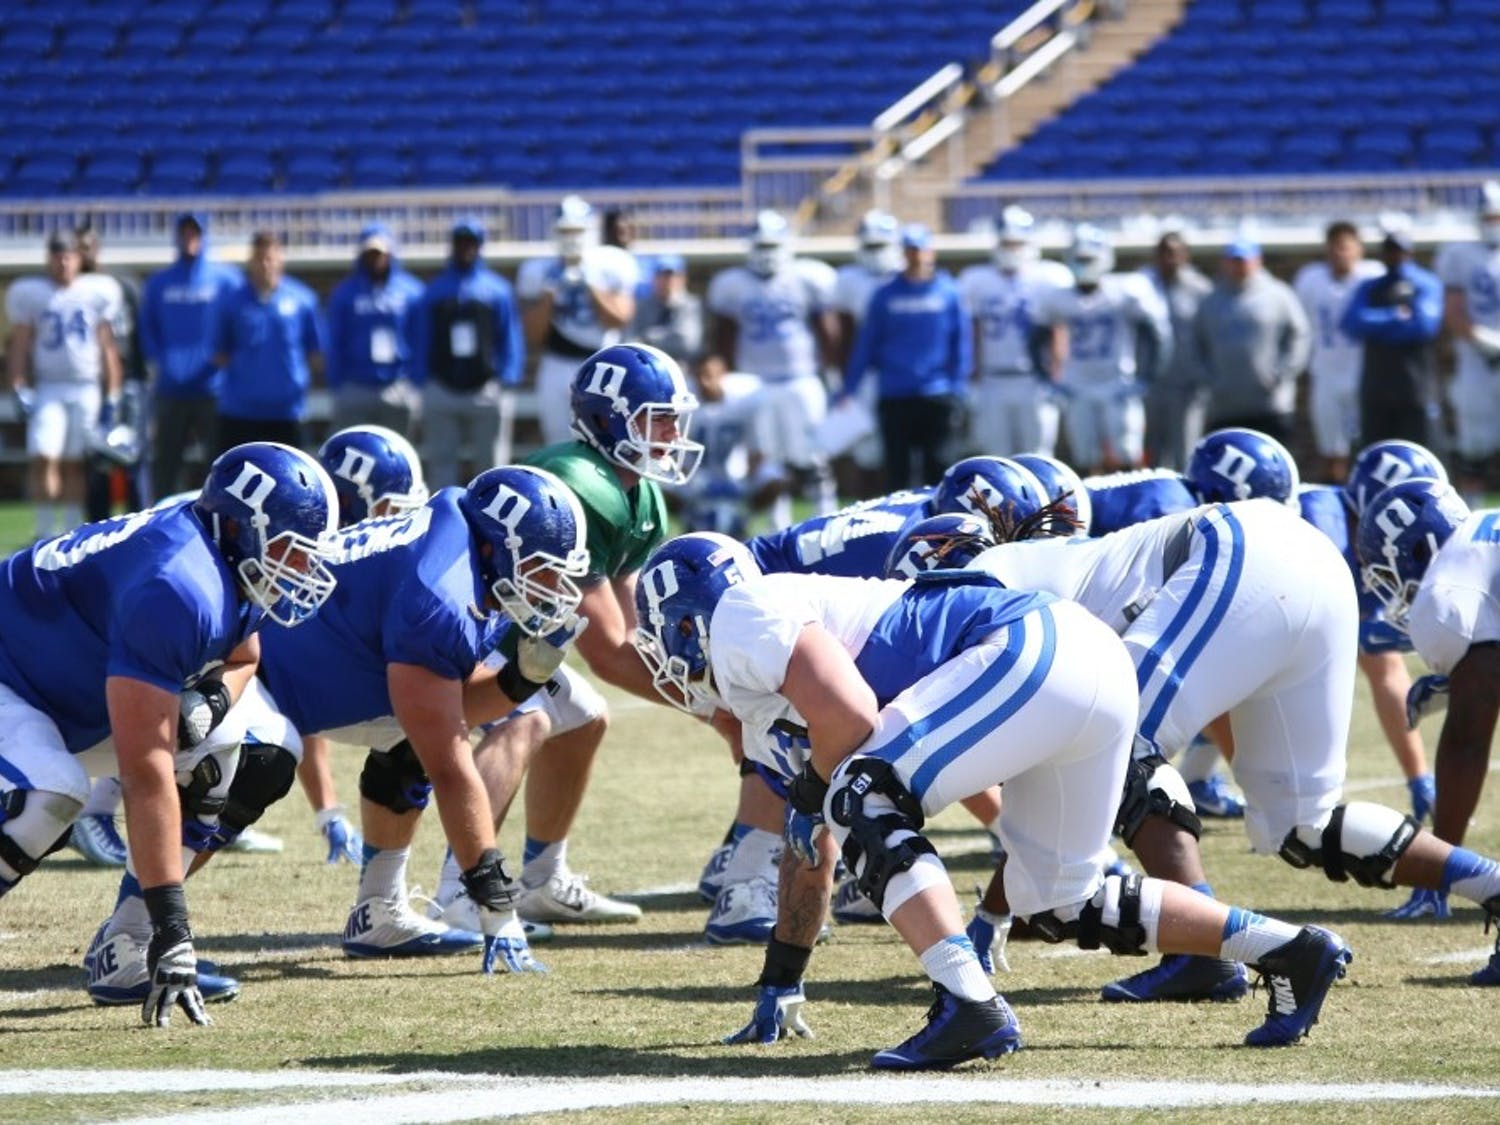 Head coach David Cutcliffe revealed Wednesday that starting guard Tanner Stone underwent back surgery, testing the depth of a Blue Devil offensive line that is already losing two starters from last season.